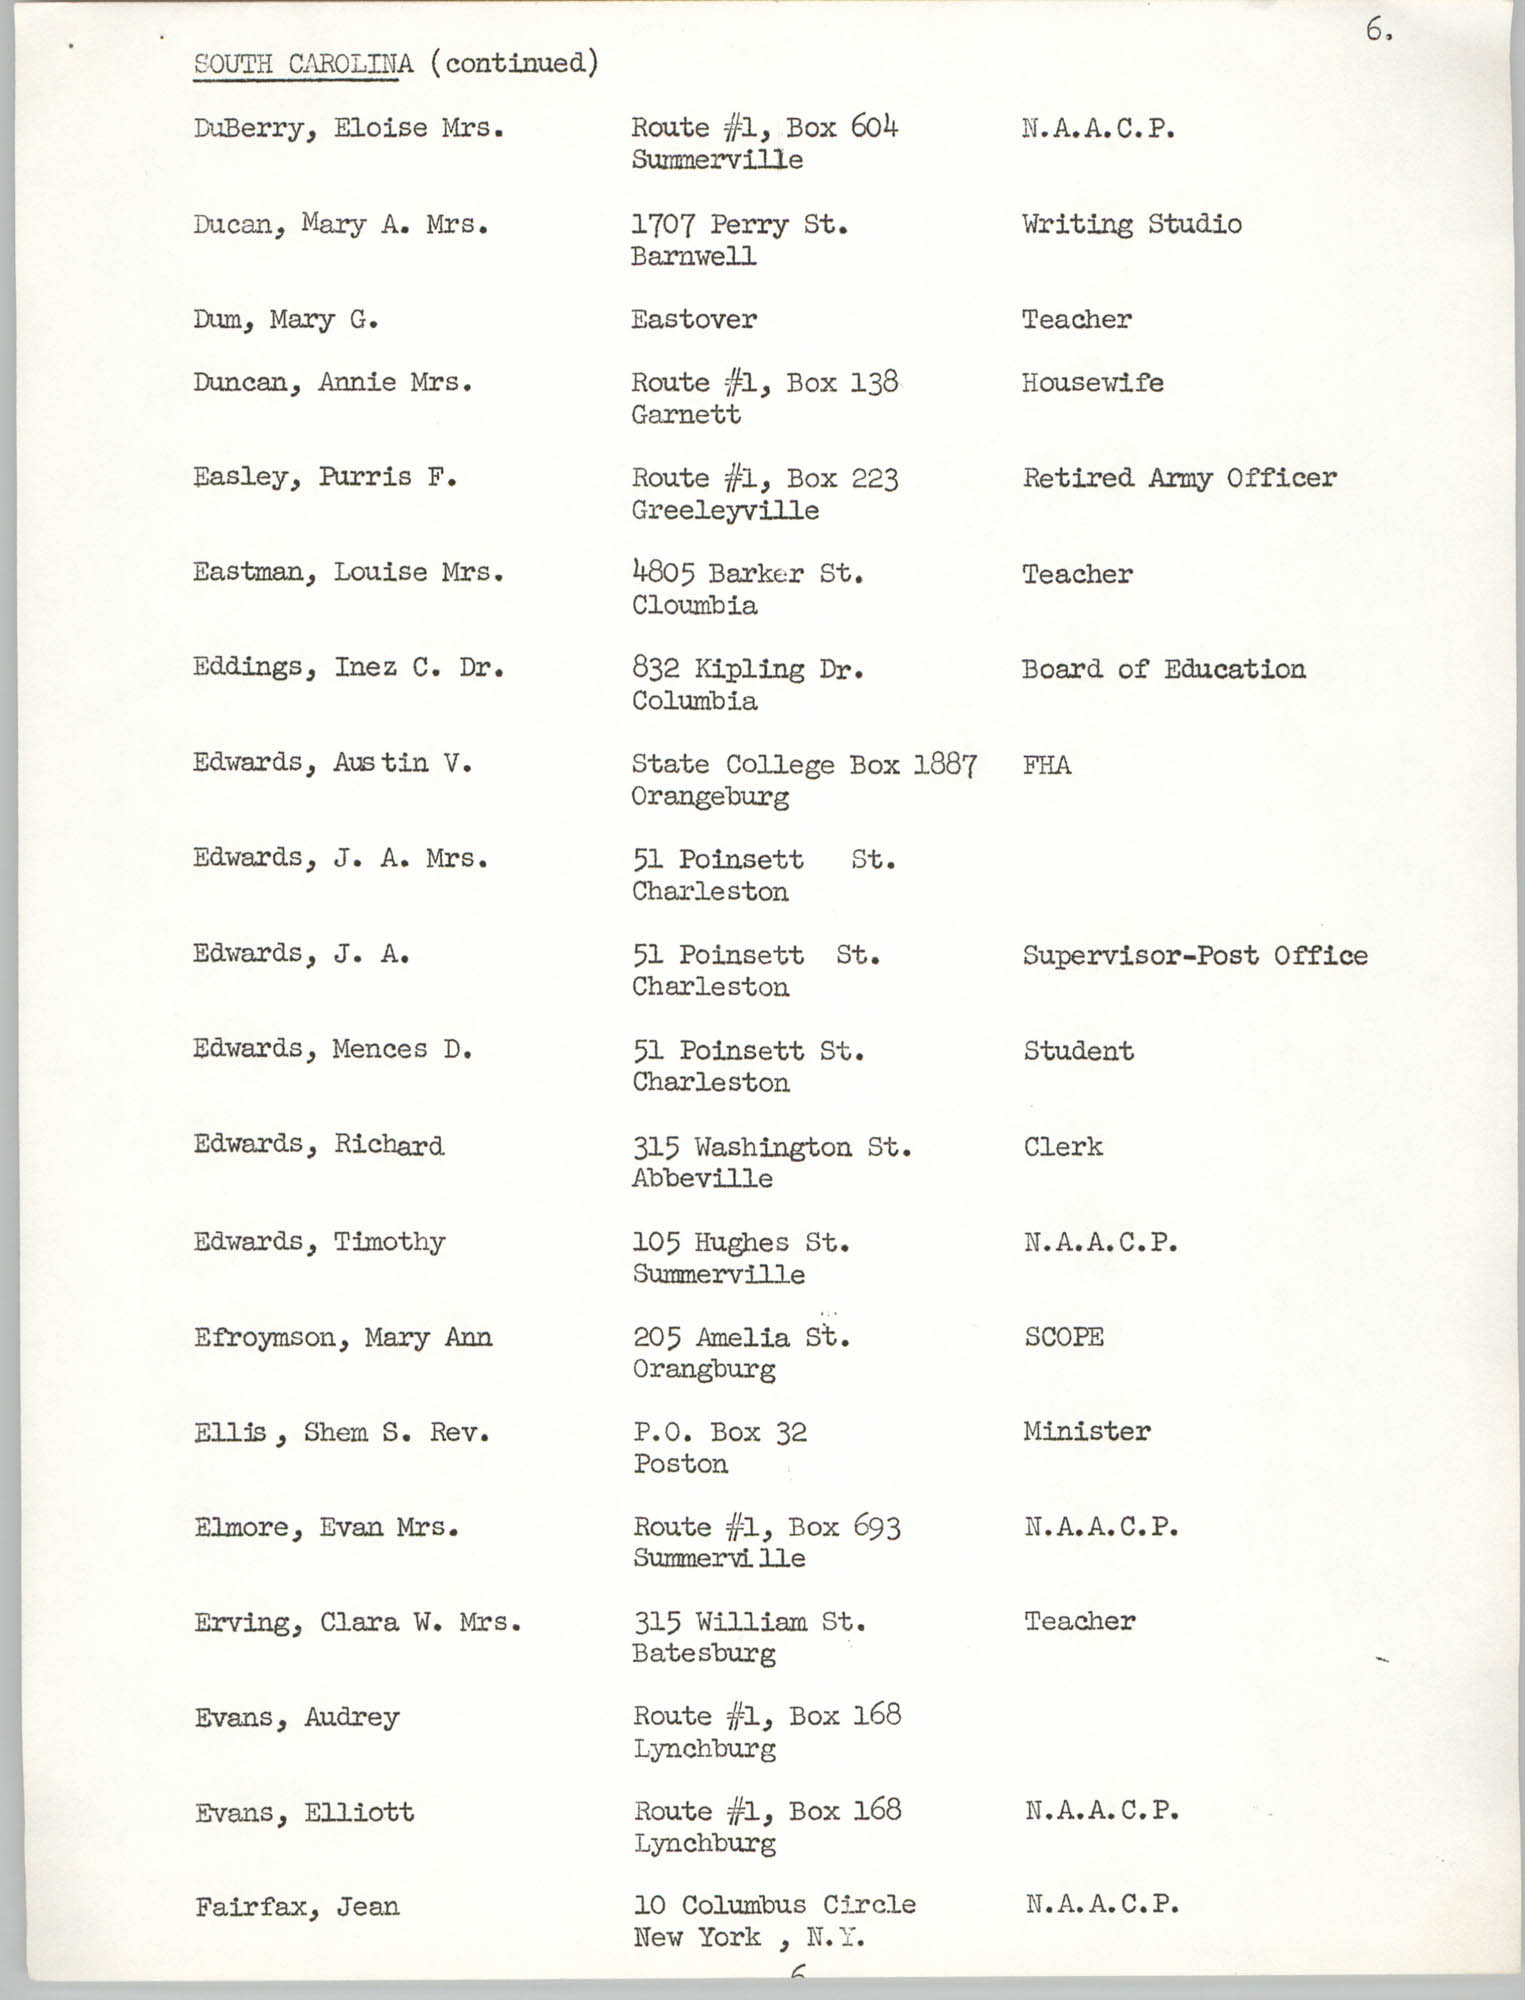 Registration, U.S. Commission on Civil Rights, Statewide Education Desegregation Conference, Page 6